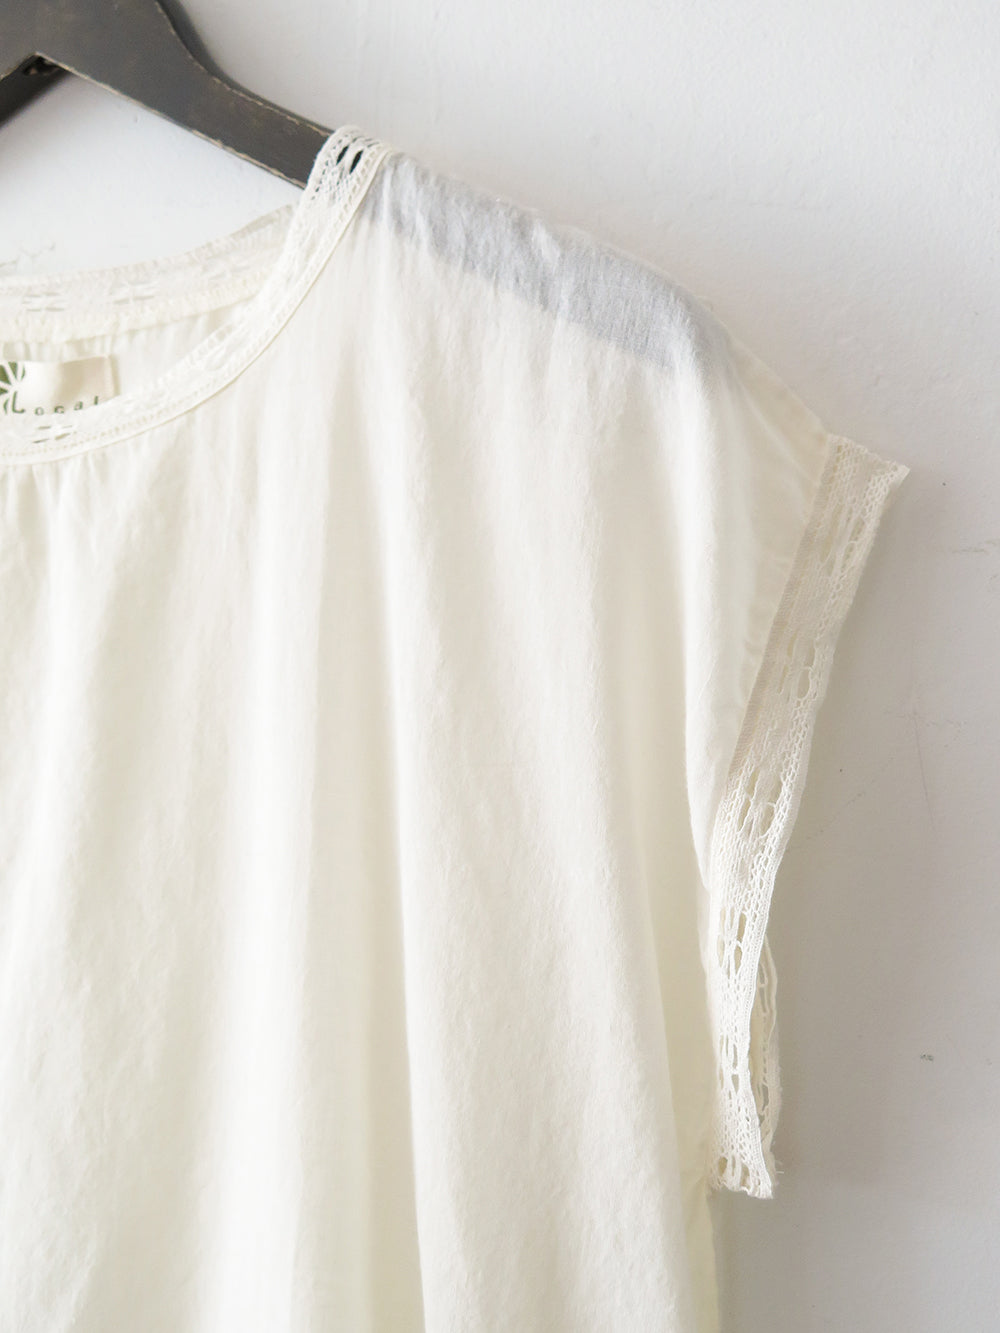 local judith blouse in white